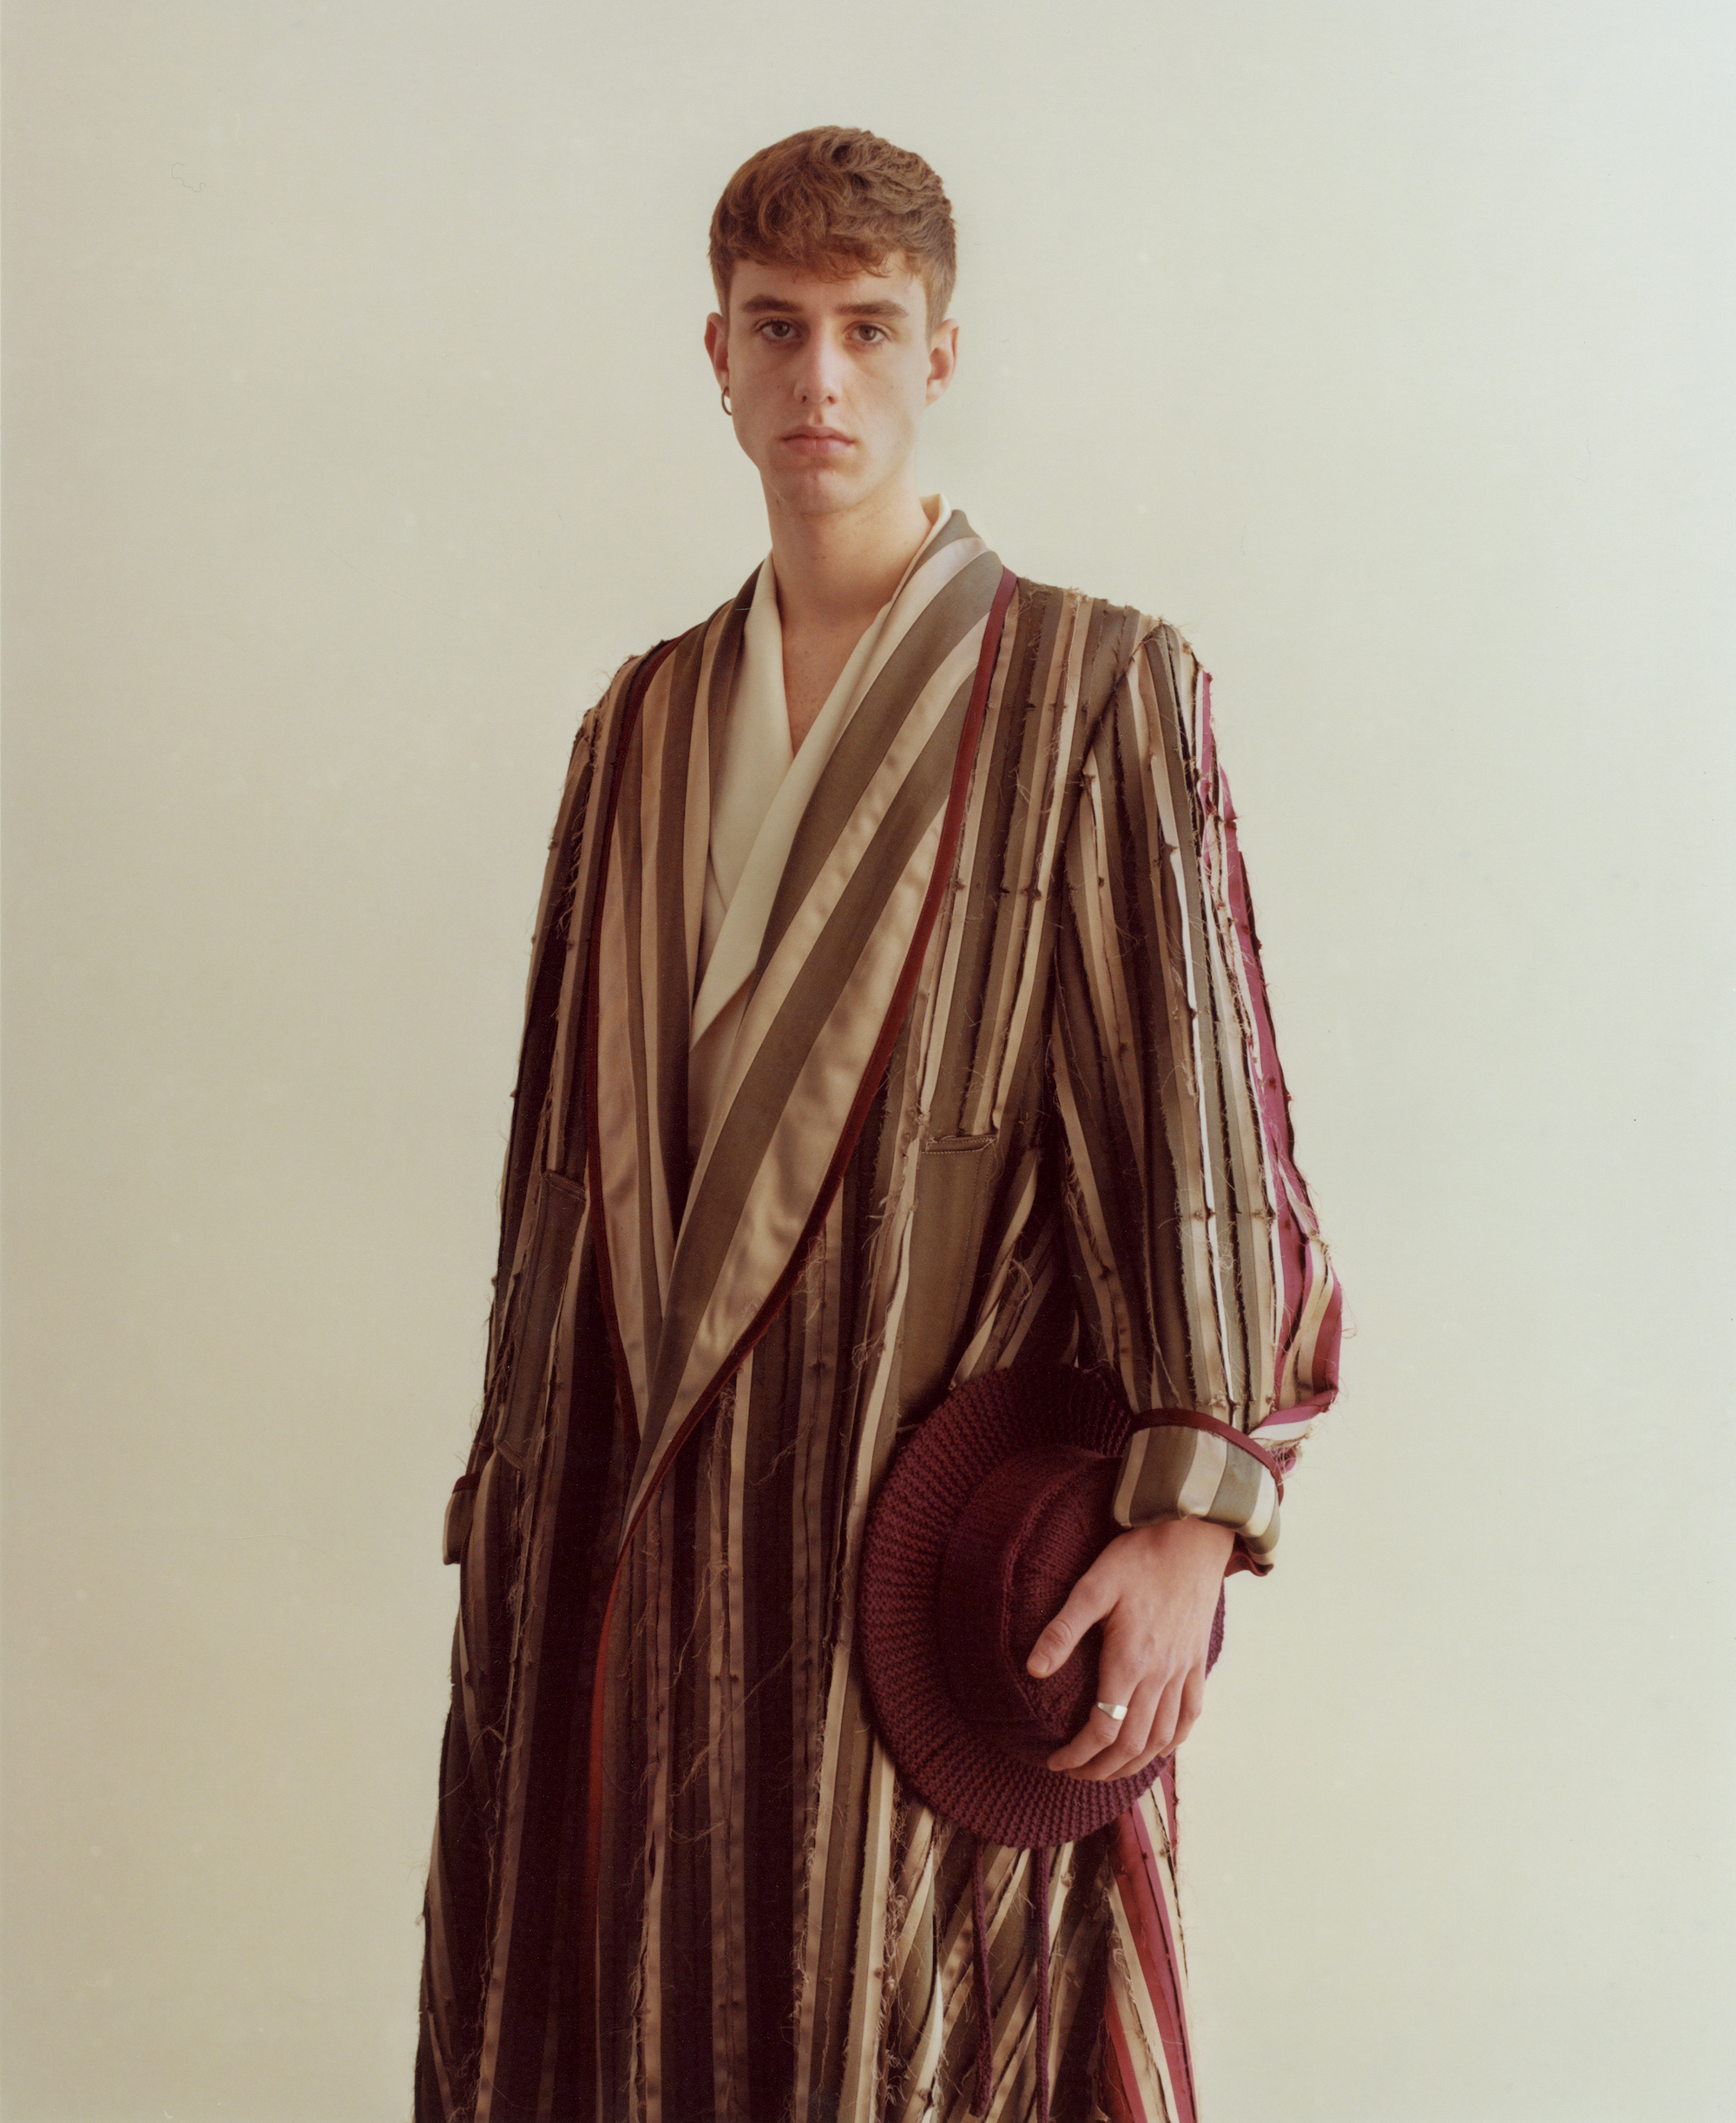 The 'Flyte' dressing gown is made up of 120 panels in three different silk qualities creating a striped appearance